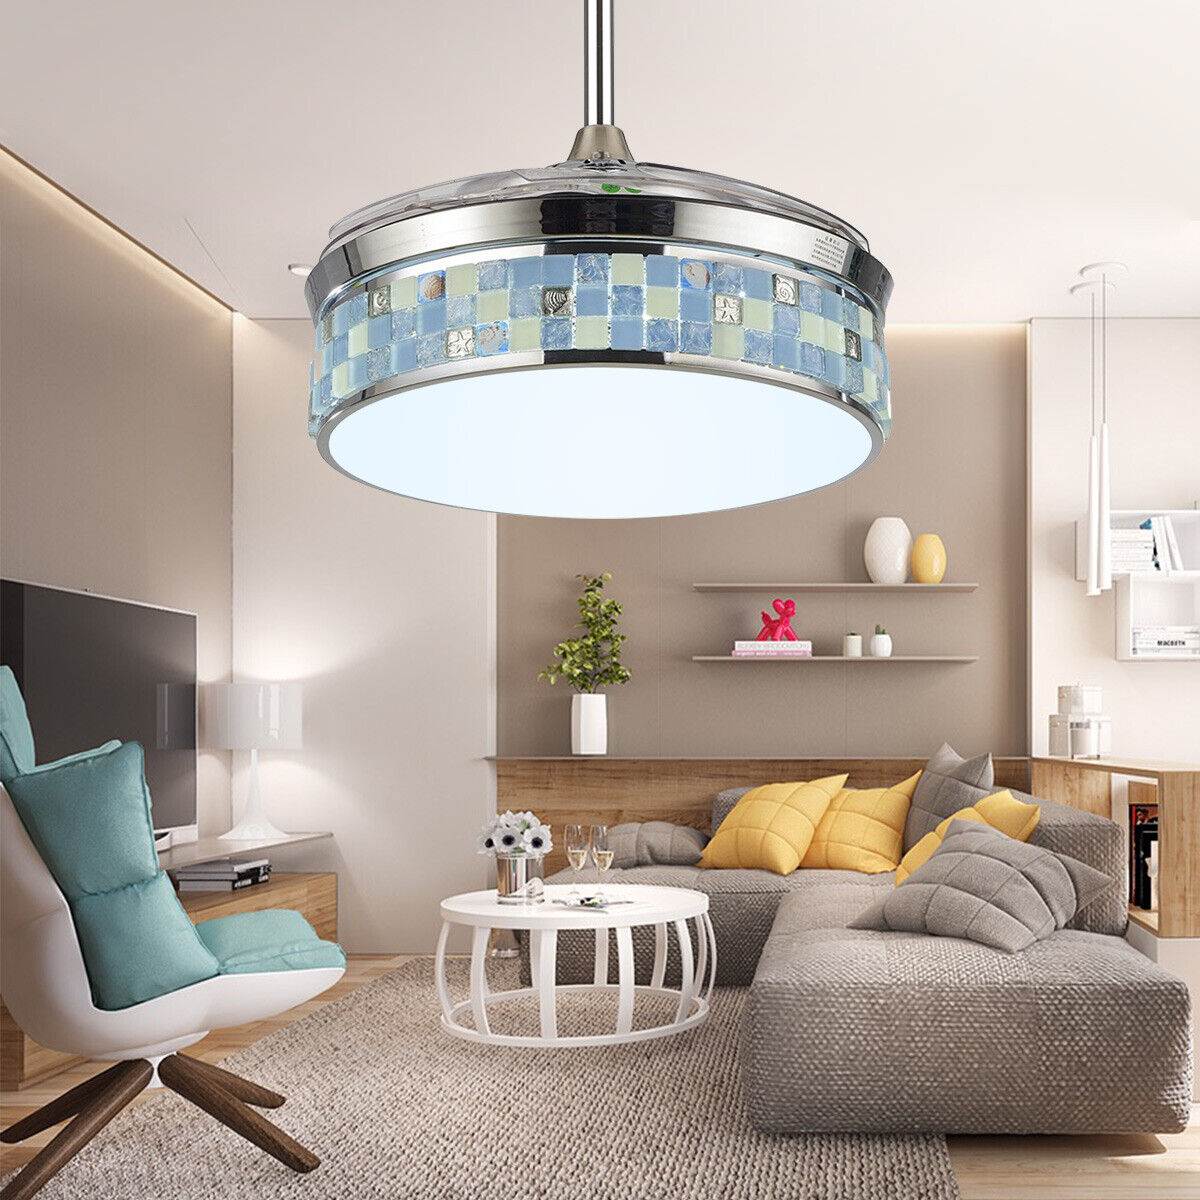 42 Modern Ceiling Fan Light Led Dimmable Retractable Blade Lamp 3 Speed Remote For Sale